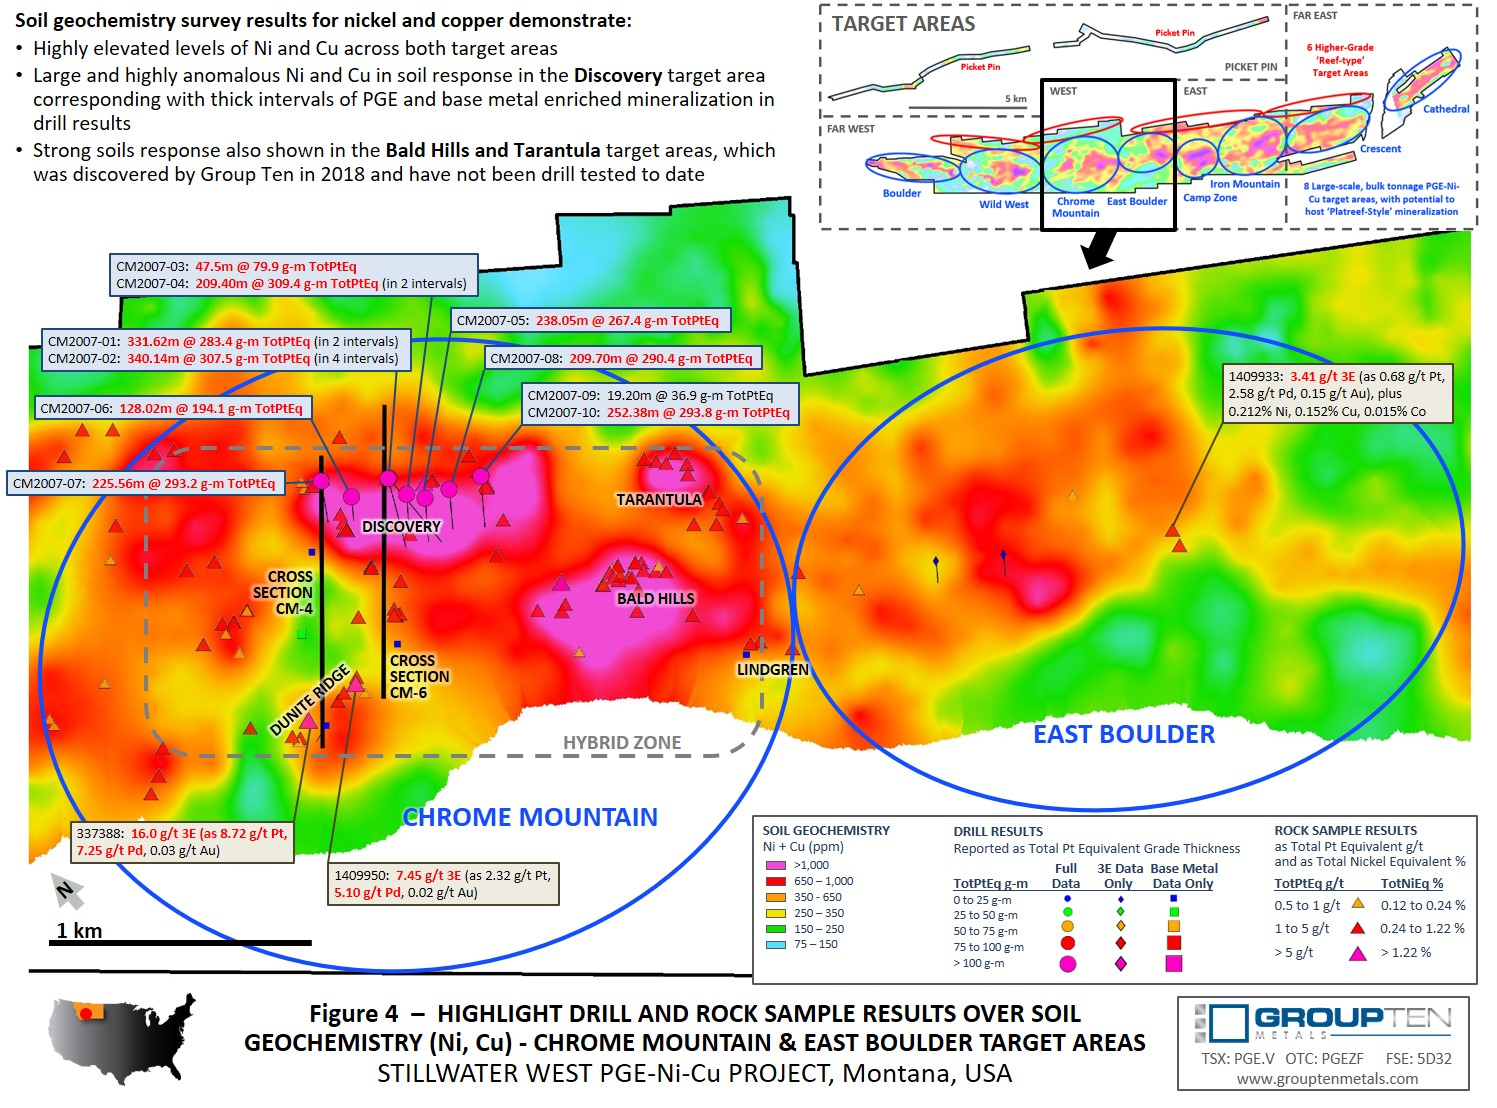 Figure 4  –  Highlight Drill and Rock Sample Results Over Soil Geochemistry (Ni, Cu) - Chrome Mountain & East Boulder Target Areas